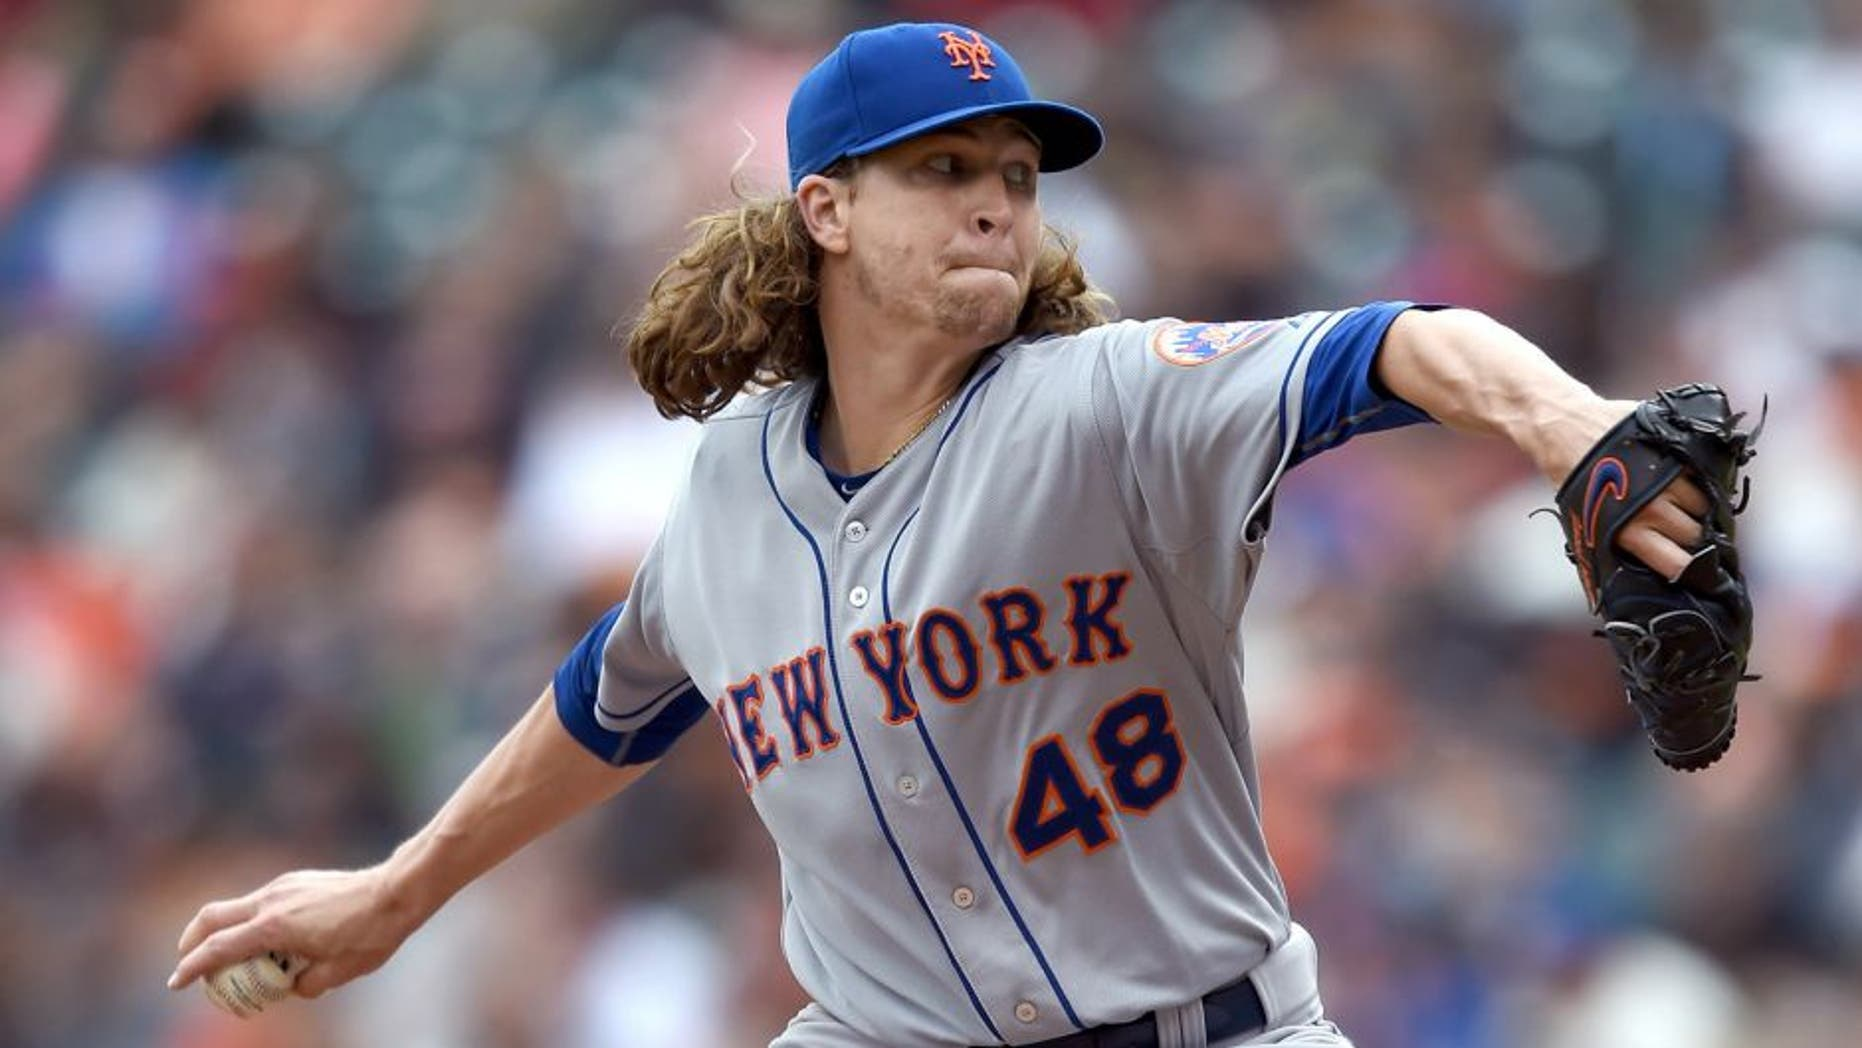 SAN FRANCISCO, CA - JULY 08: Jacob deGrom #48 of the New York Mets pitches against the San Francisco Giants in the bottom of the eighth inning at AT&T Park on July 8, 2015 in San Francisco, California. The Mets won the game 4-1. (Photo by Thearon W. Henderson/Getty Images)